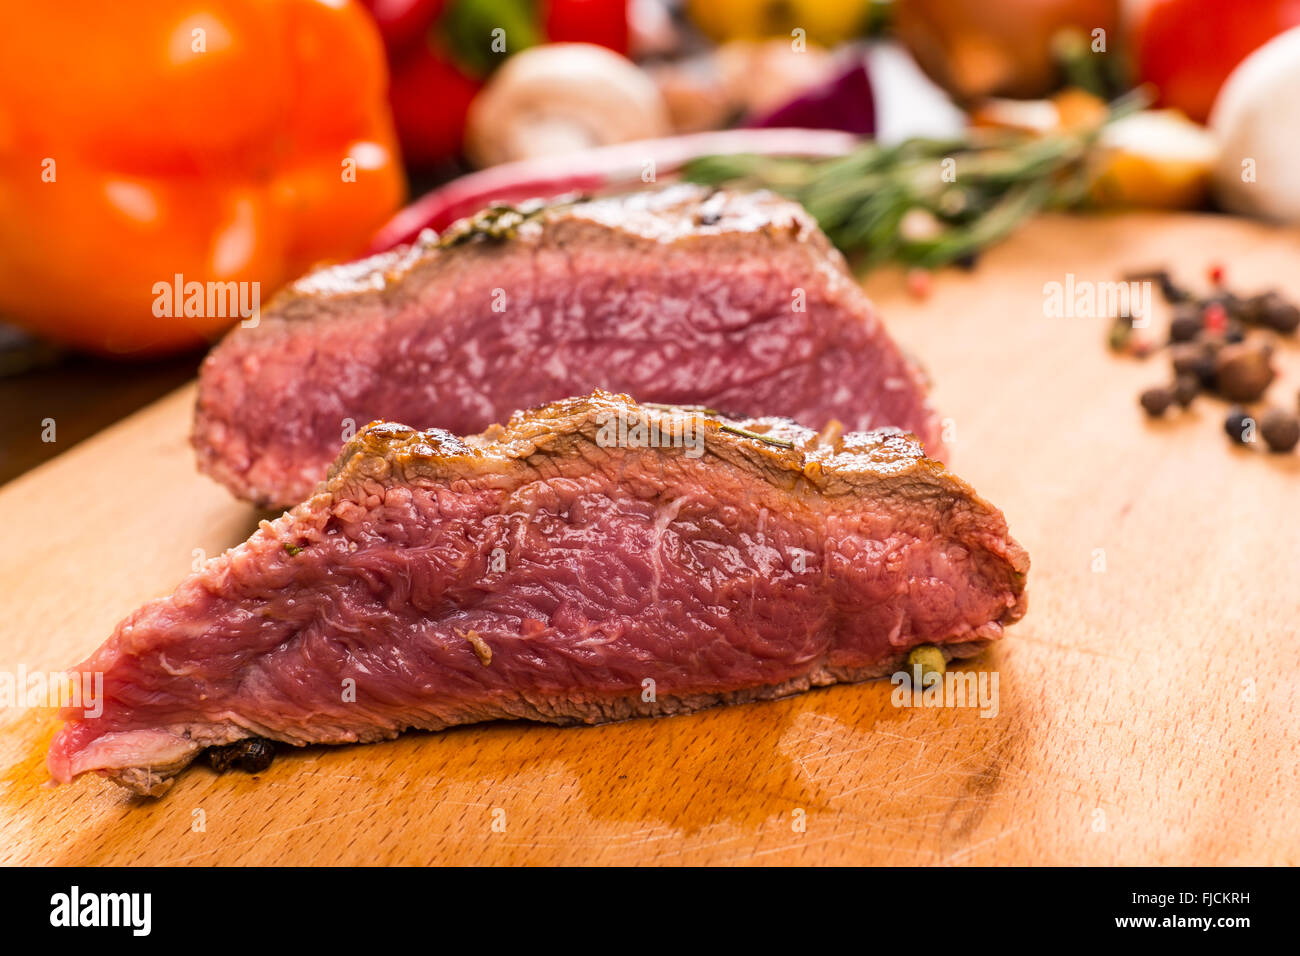 Sliced roast beef package - Close Up Still Life Of Rare Cooked Roast Beef Sliced In Half And Resting On Wooden Cutting Board With Fresh Vegetables Herbs And Spices In Background